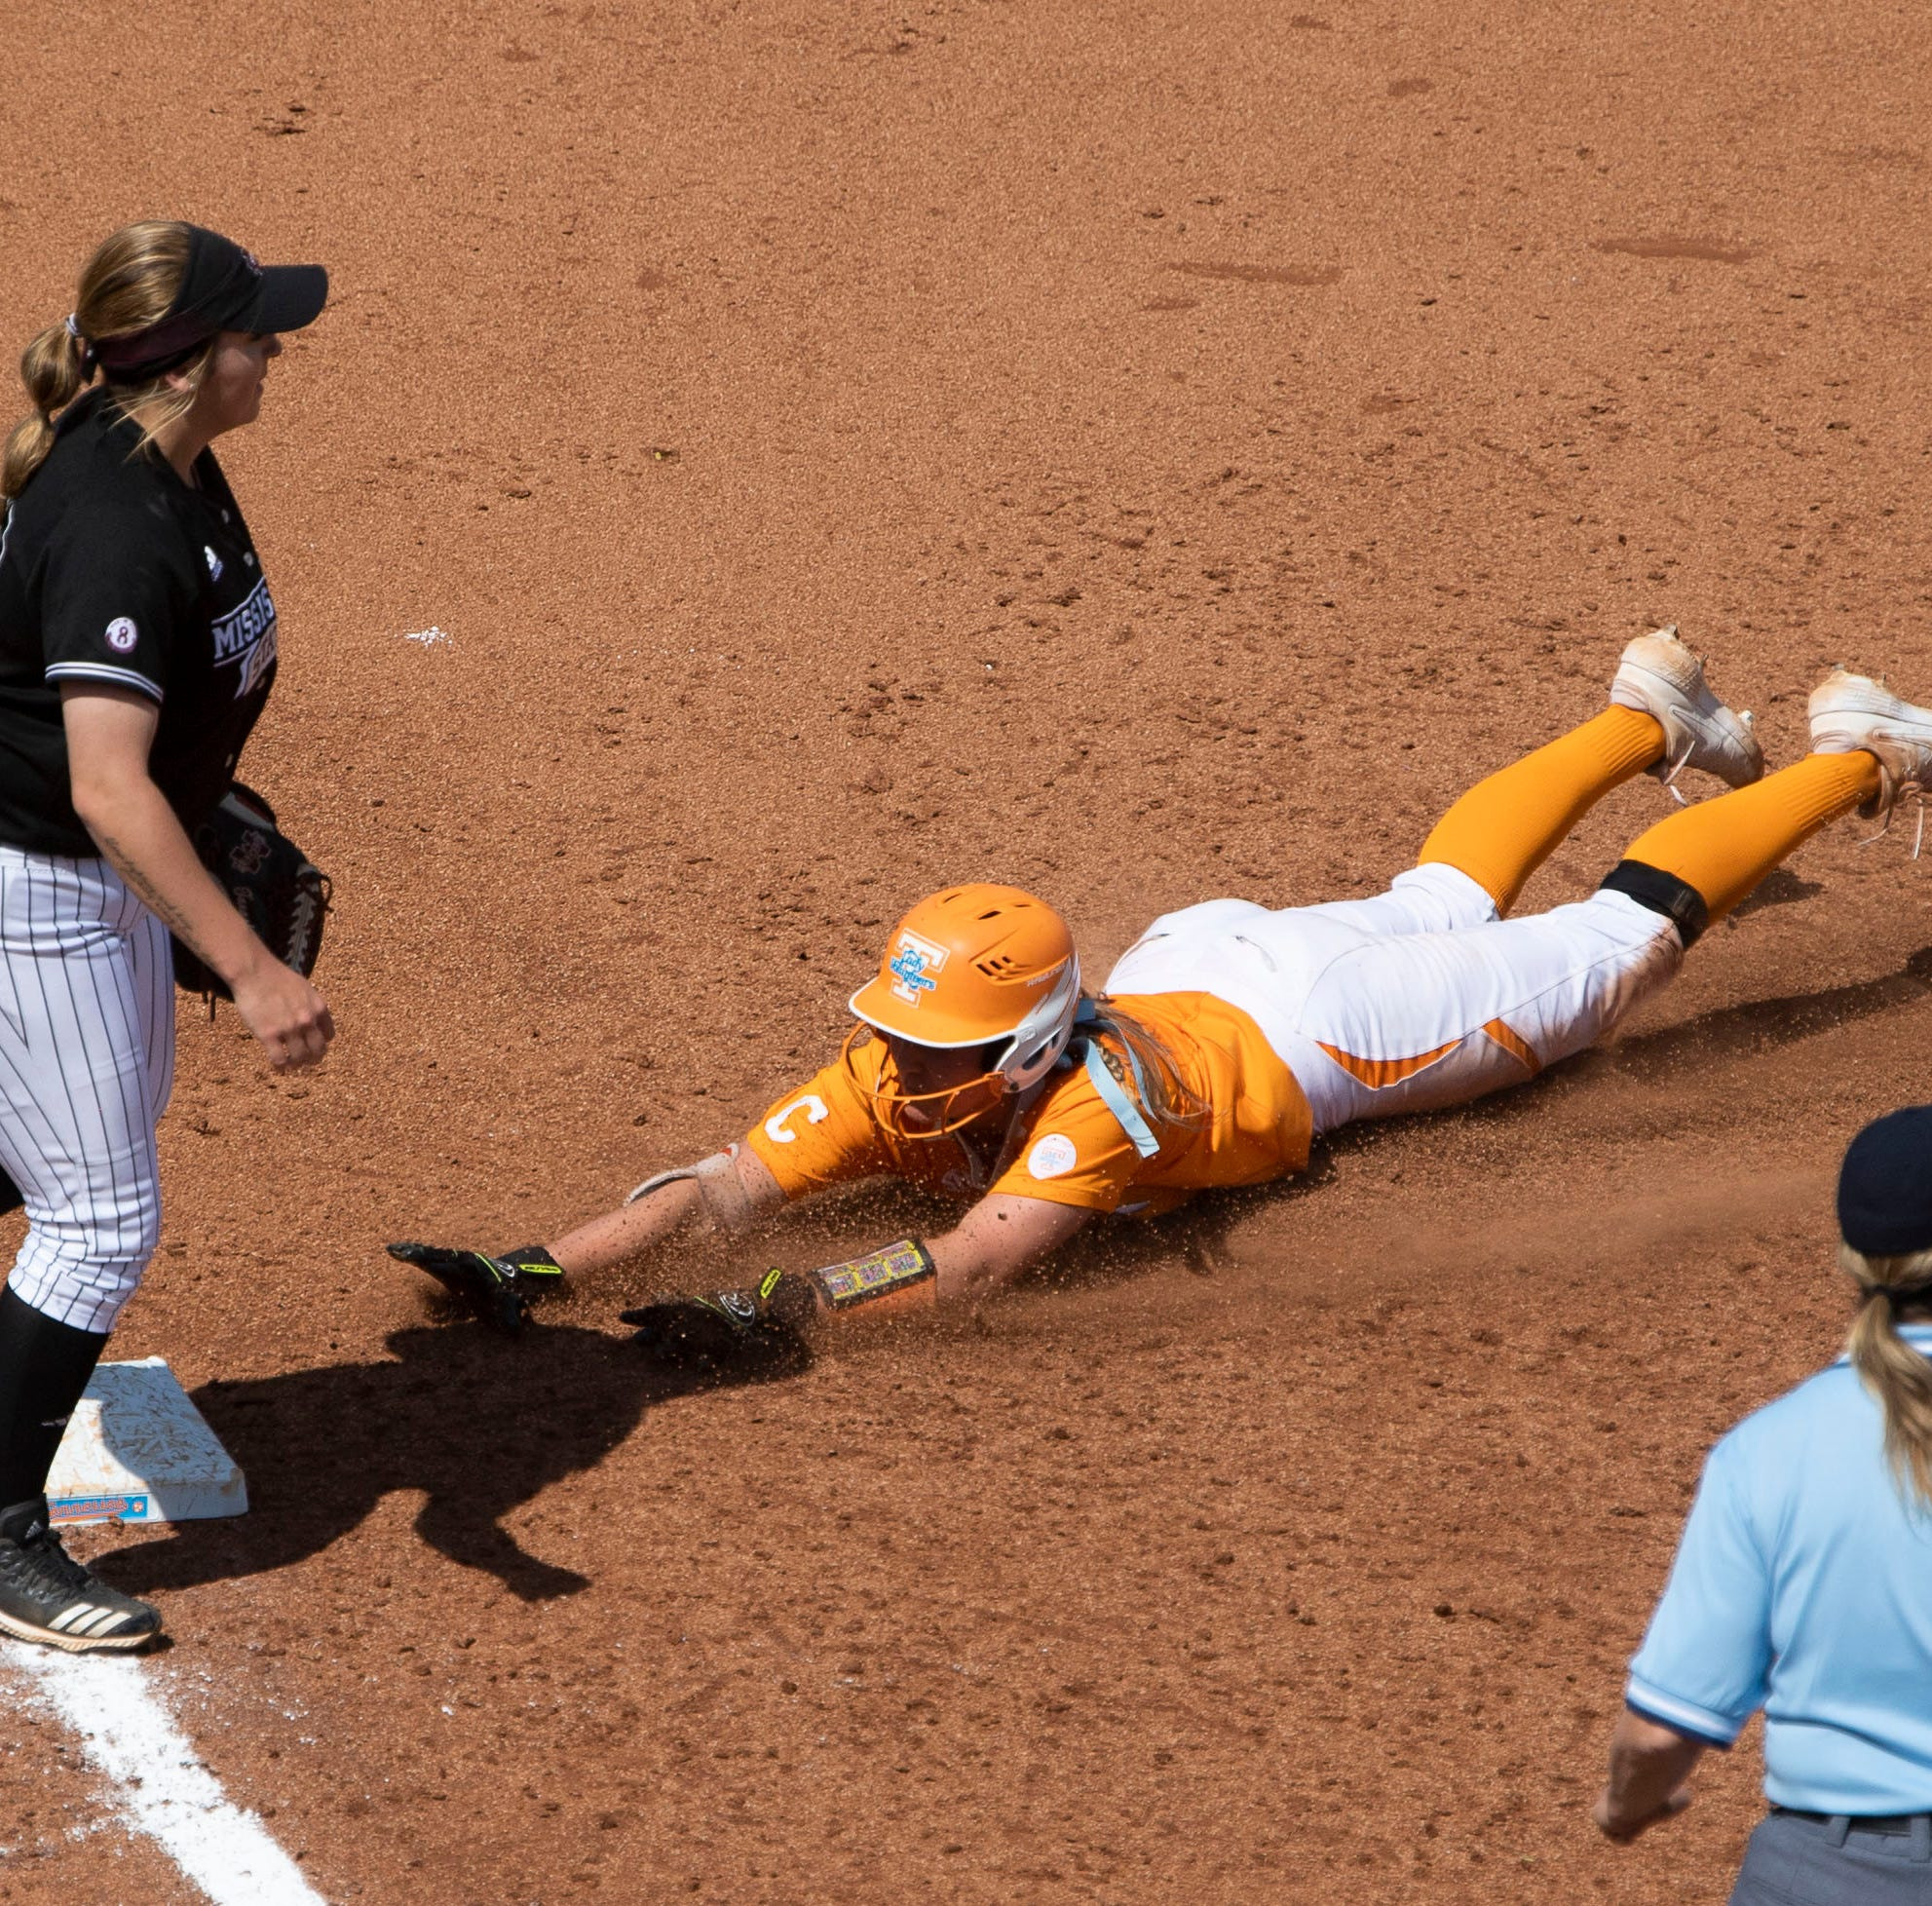 NCAA Softball Tournament: Chelsea Seggern hits two home runs to power Tennessee Lady Vols into winner's bracket